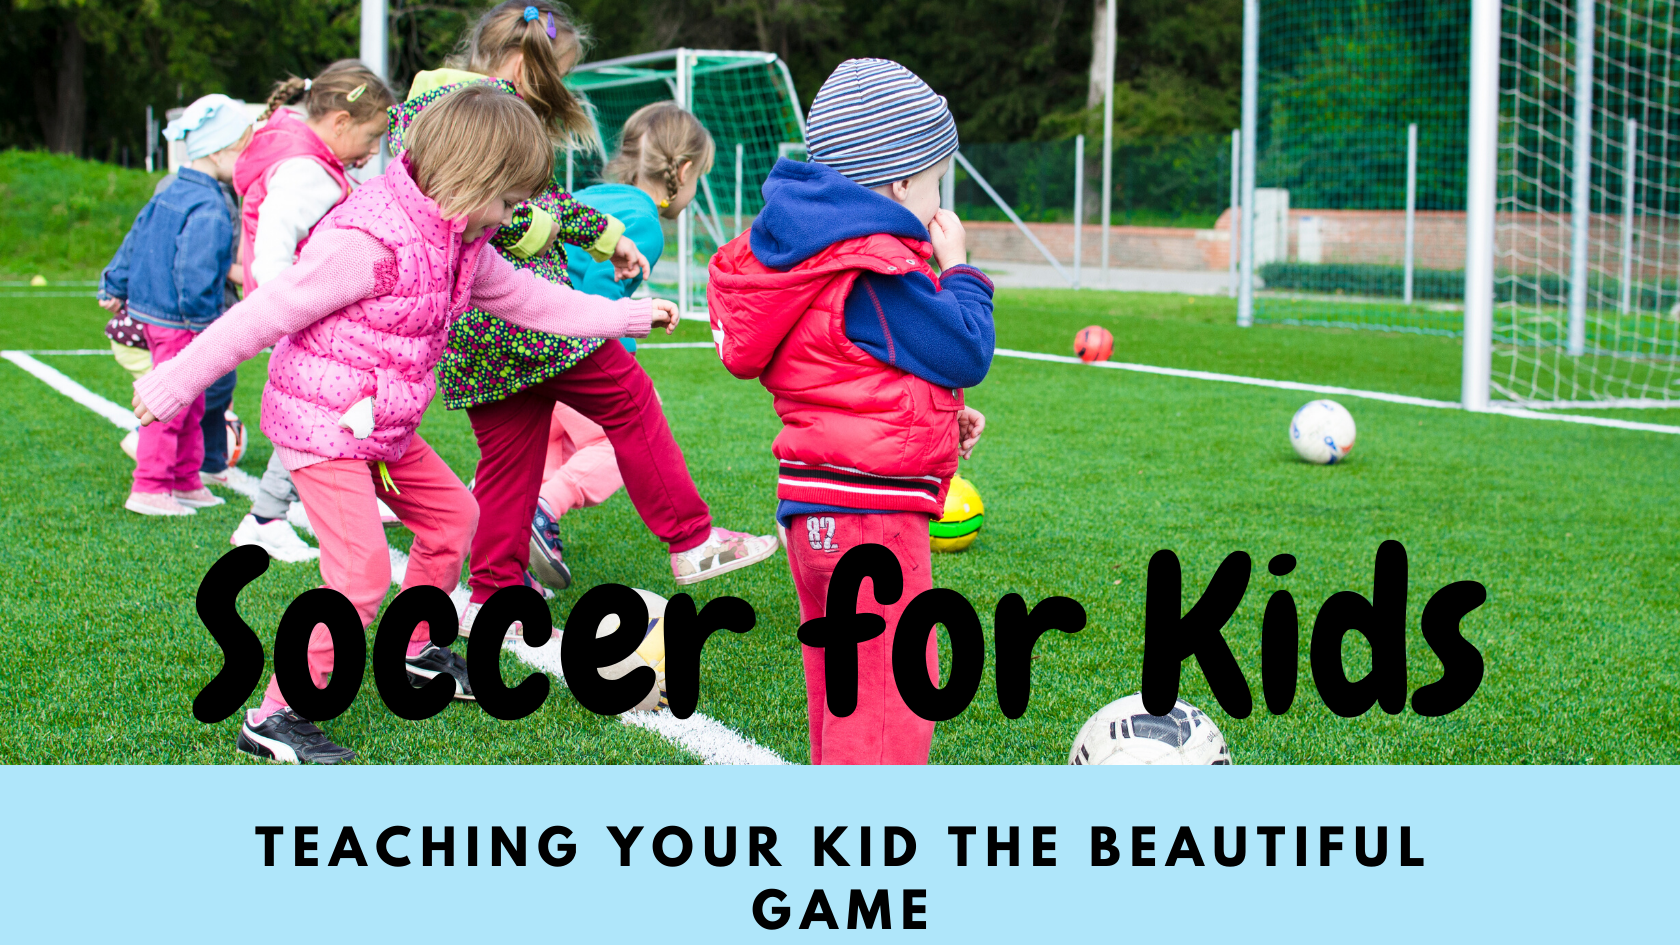 Soccer for Kids: teaching your kid the beautiful game